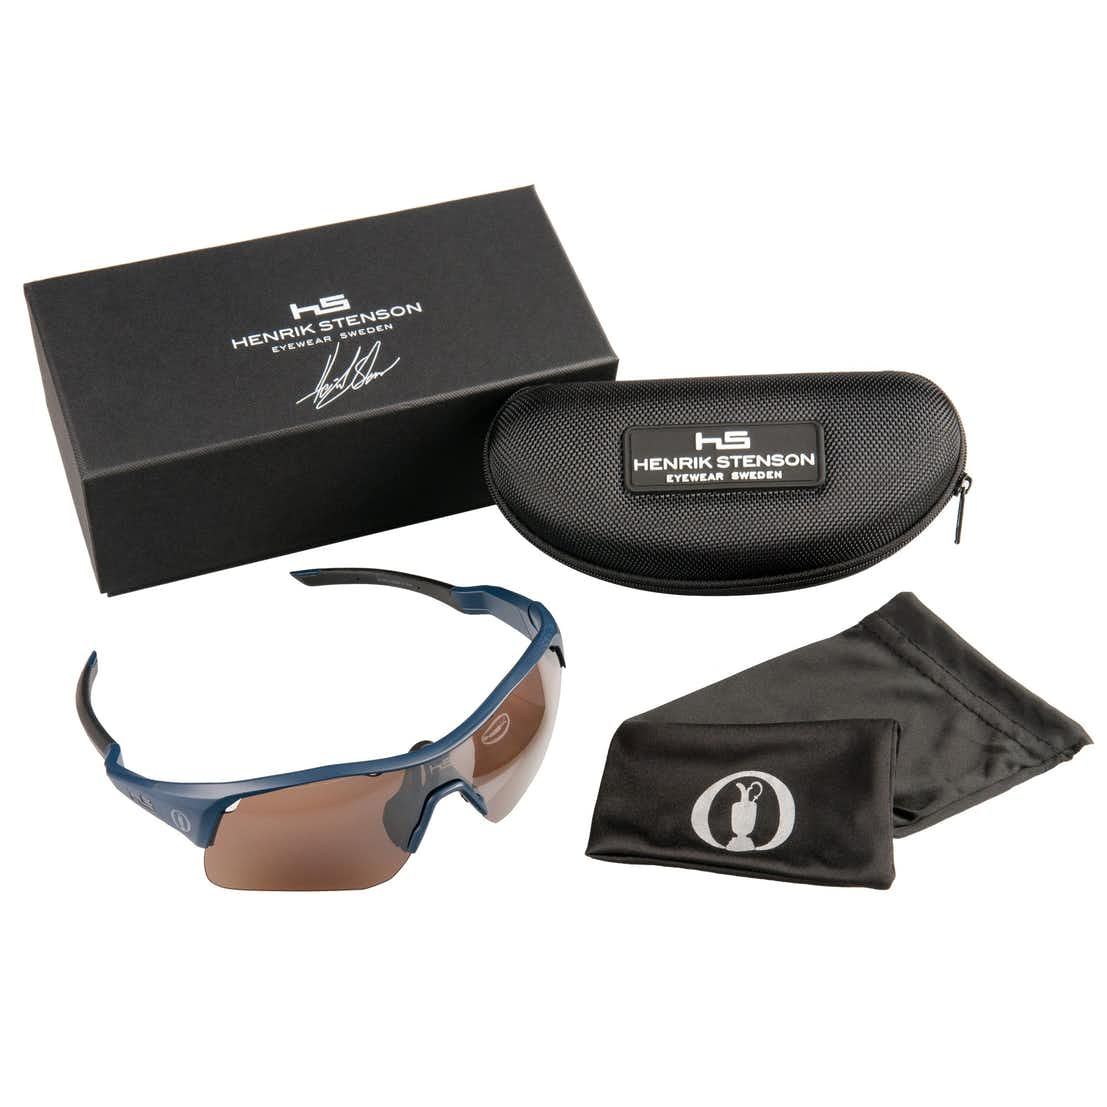 Henrik Stenson Eyewear Limited-Edition Sunglasses - Blue